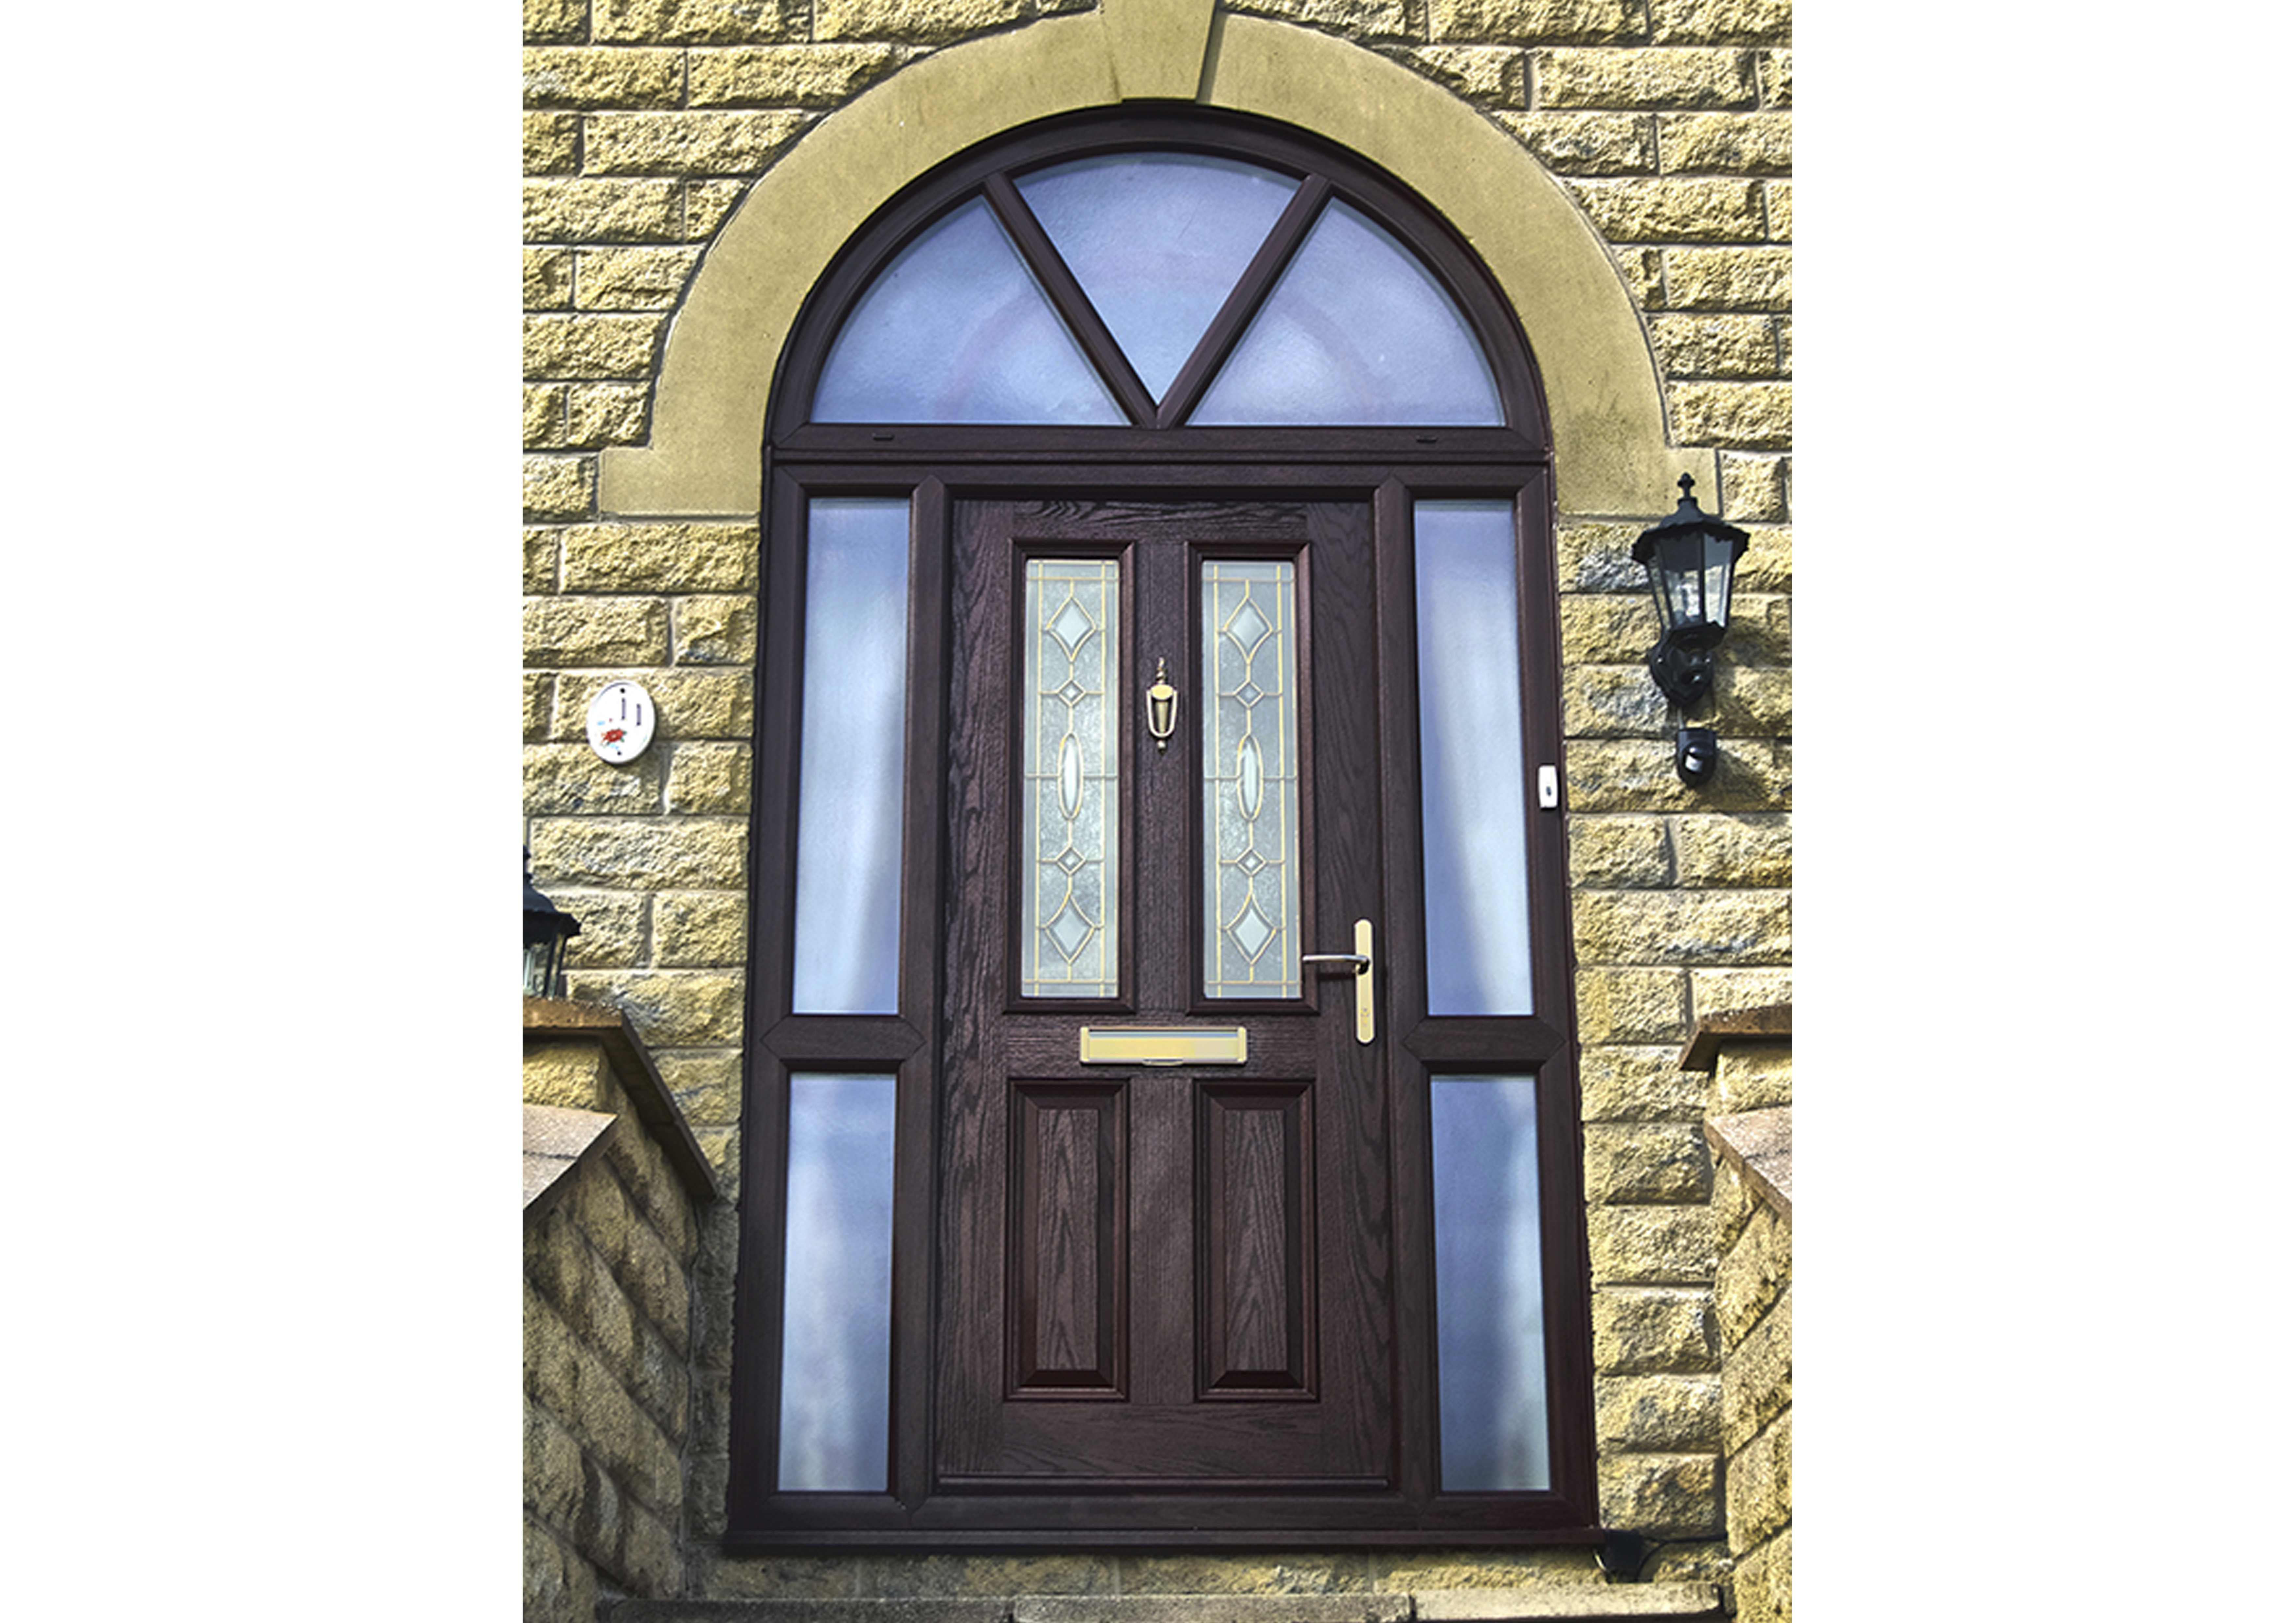 Choosing the right entrance door for your home